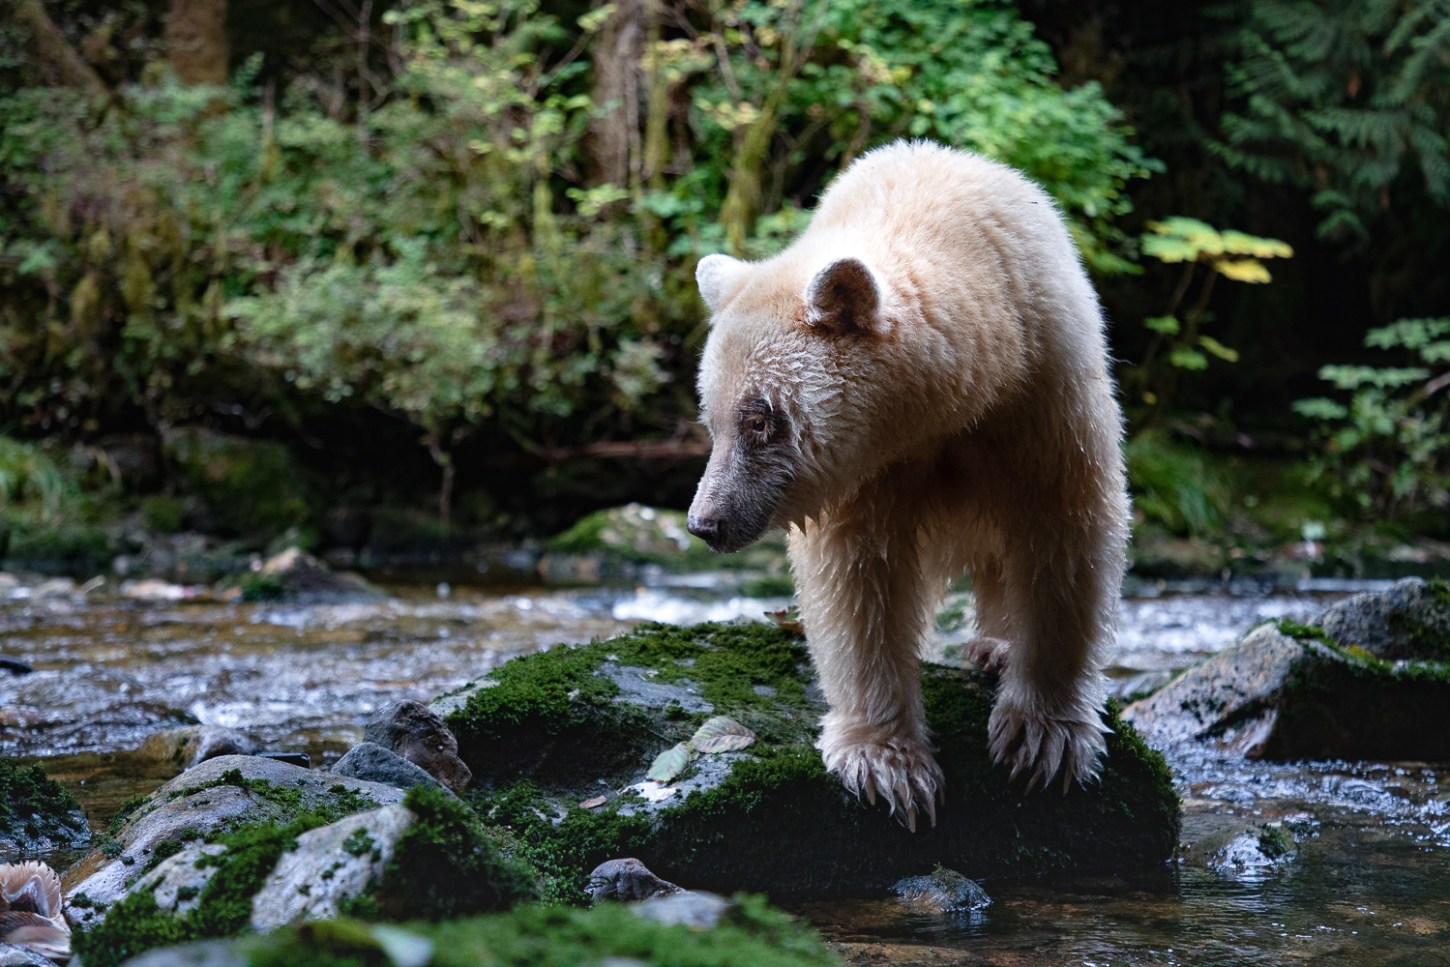 Ma'ah - a famous spirit bear - scanning a creek for salmon in the Great Bear Rainforest